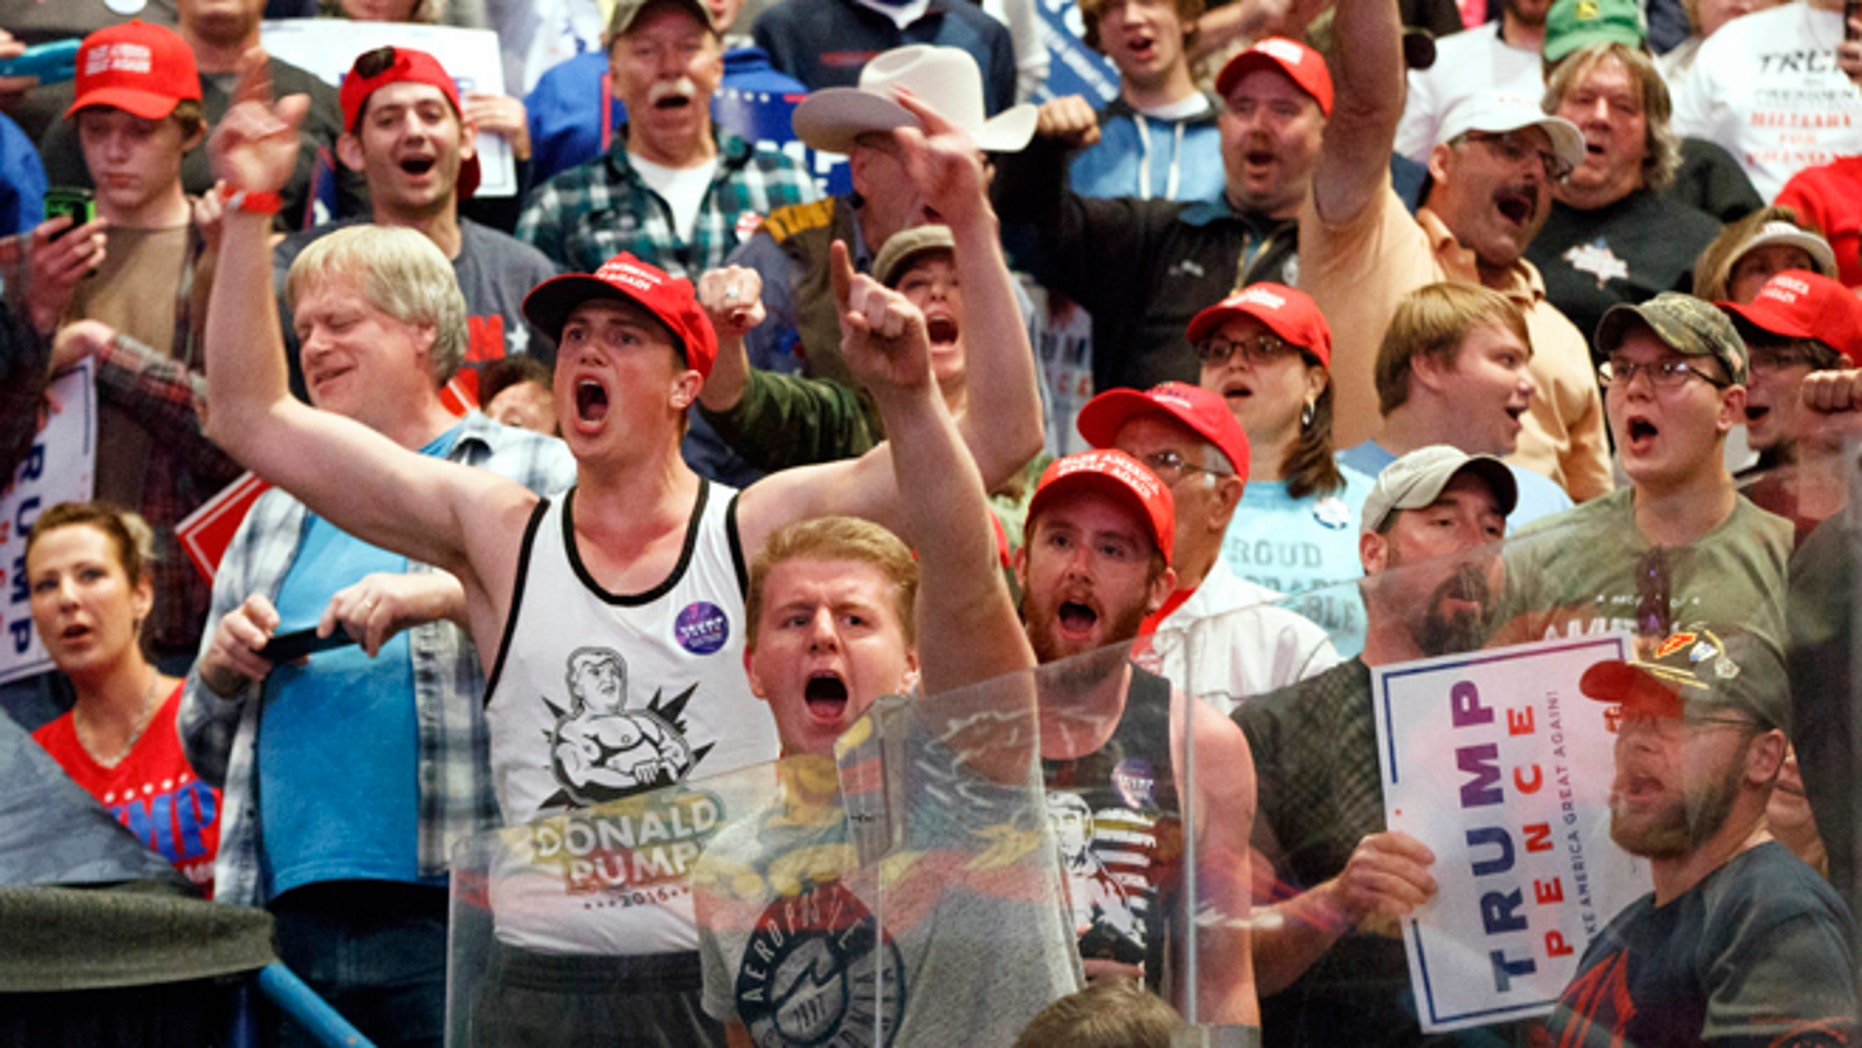 """FILE - In this Monday, Oct. 10, 2016 file photo, supporters cheer for Republican presidential candidate Donald Trump during a rally in Wilkes-Barre, Pa. Mark DeMoss, a public relations executive and conservative Republican whose clients are mostly Christian religious organizations, says, """"Thereââ¬â¢s plenty of blame to go around on this subject, but I think in this particular election that an embrace of Donald Trump was an embrace of incivility and vulgarity and insults and bullying, and unfortunately we saw very little public repudiation of that from any Trump supporters."""" (AP Photo/Evan Vucci)"""